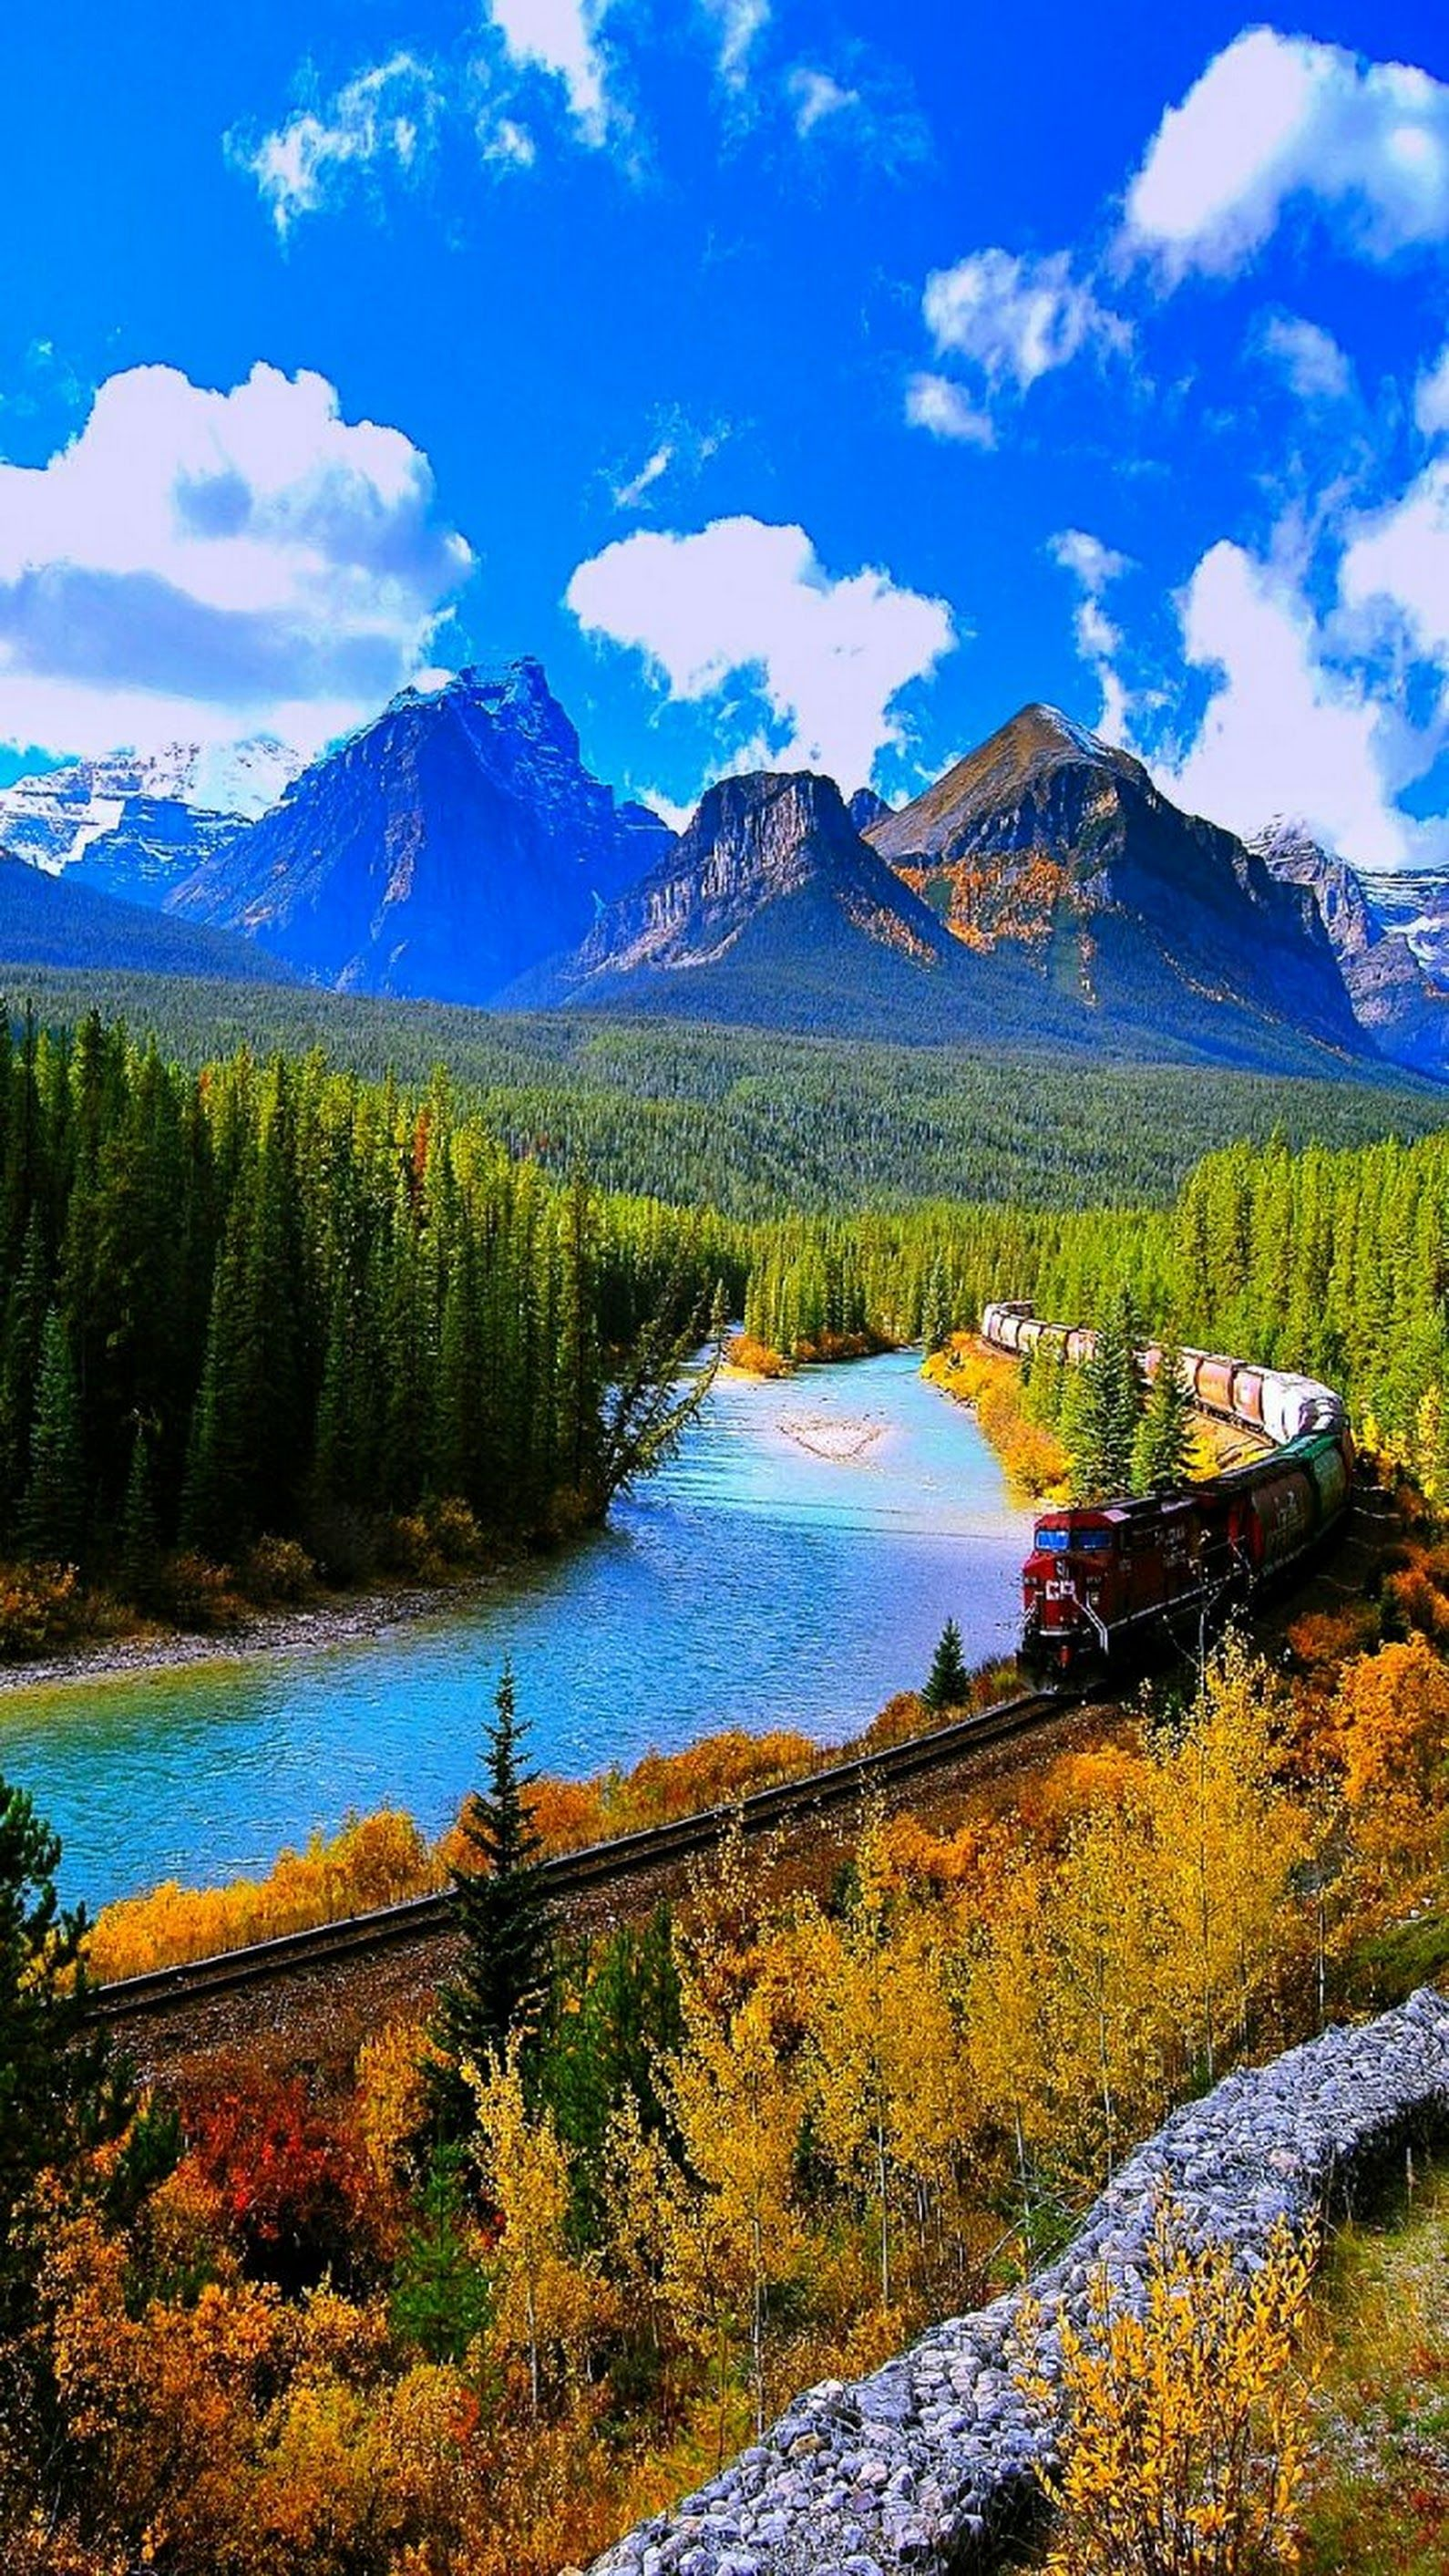 Canada Enjoying Natural Painting With Train Beautiful